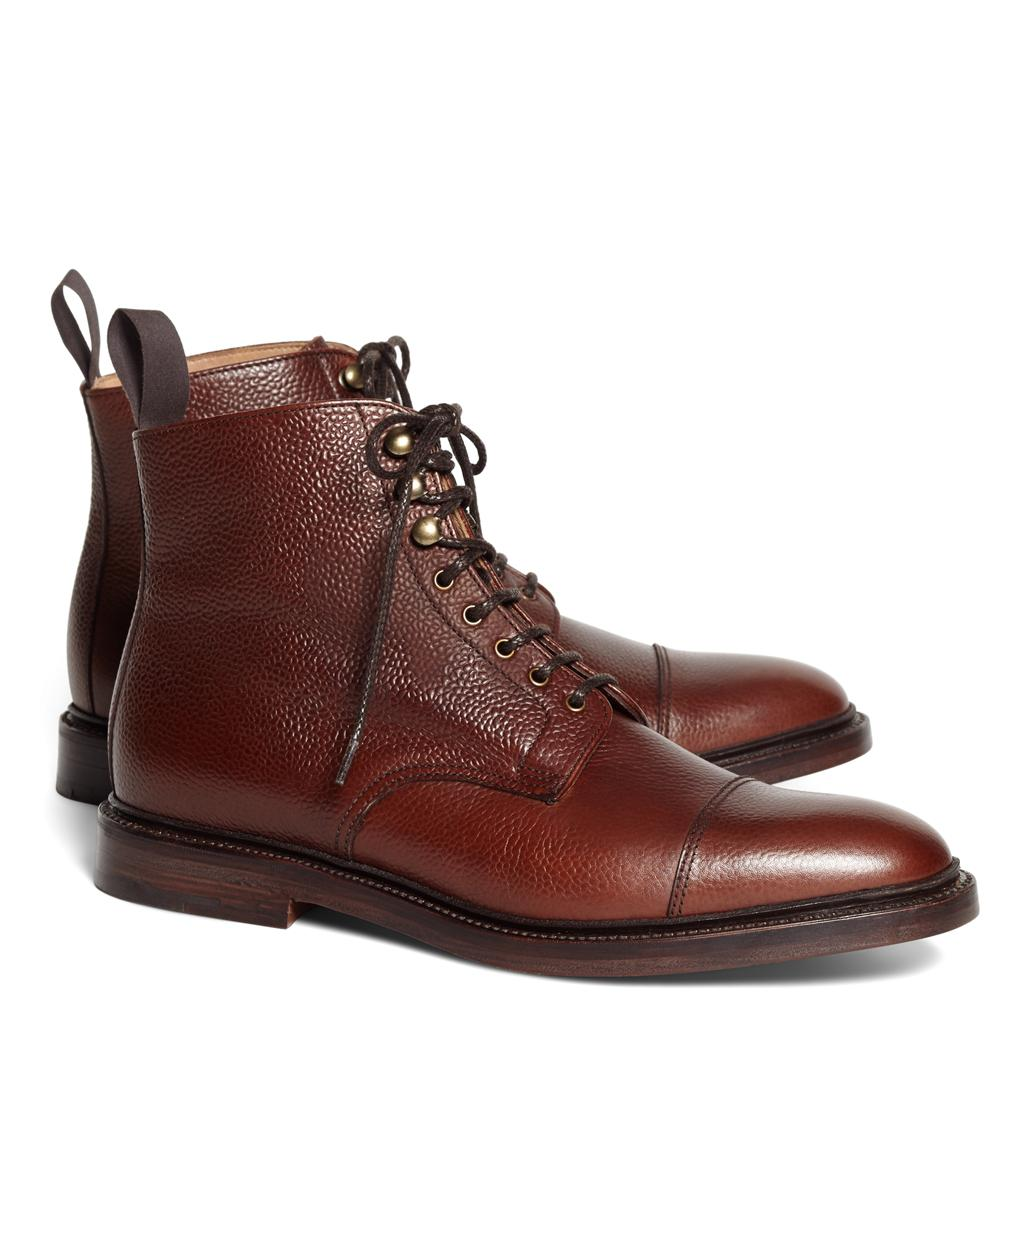 e1d429ebe83 Brooks Brothers Peal   Co Captoe Boots in Brown for Men - Lyst